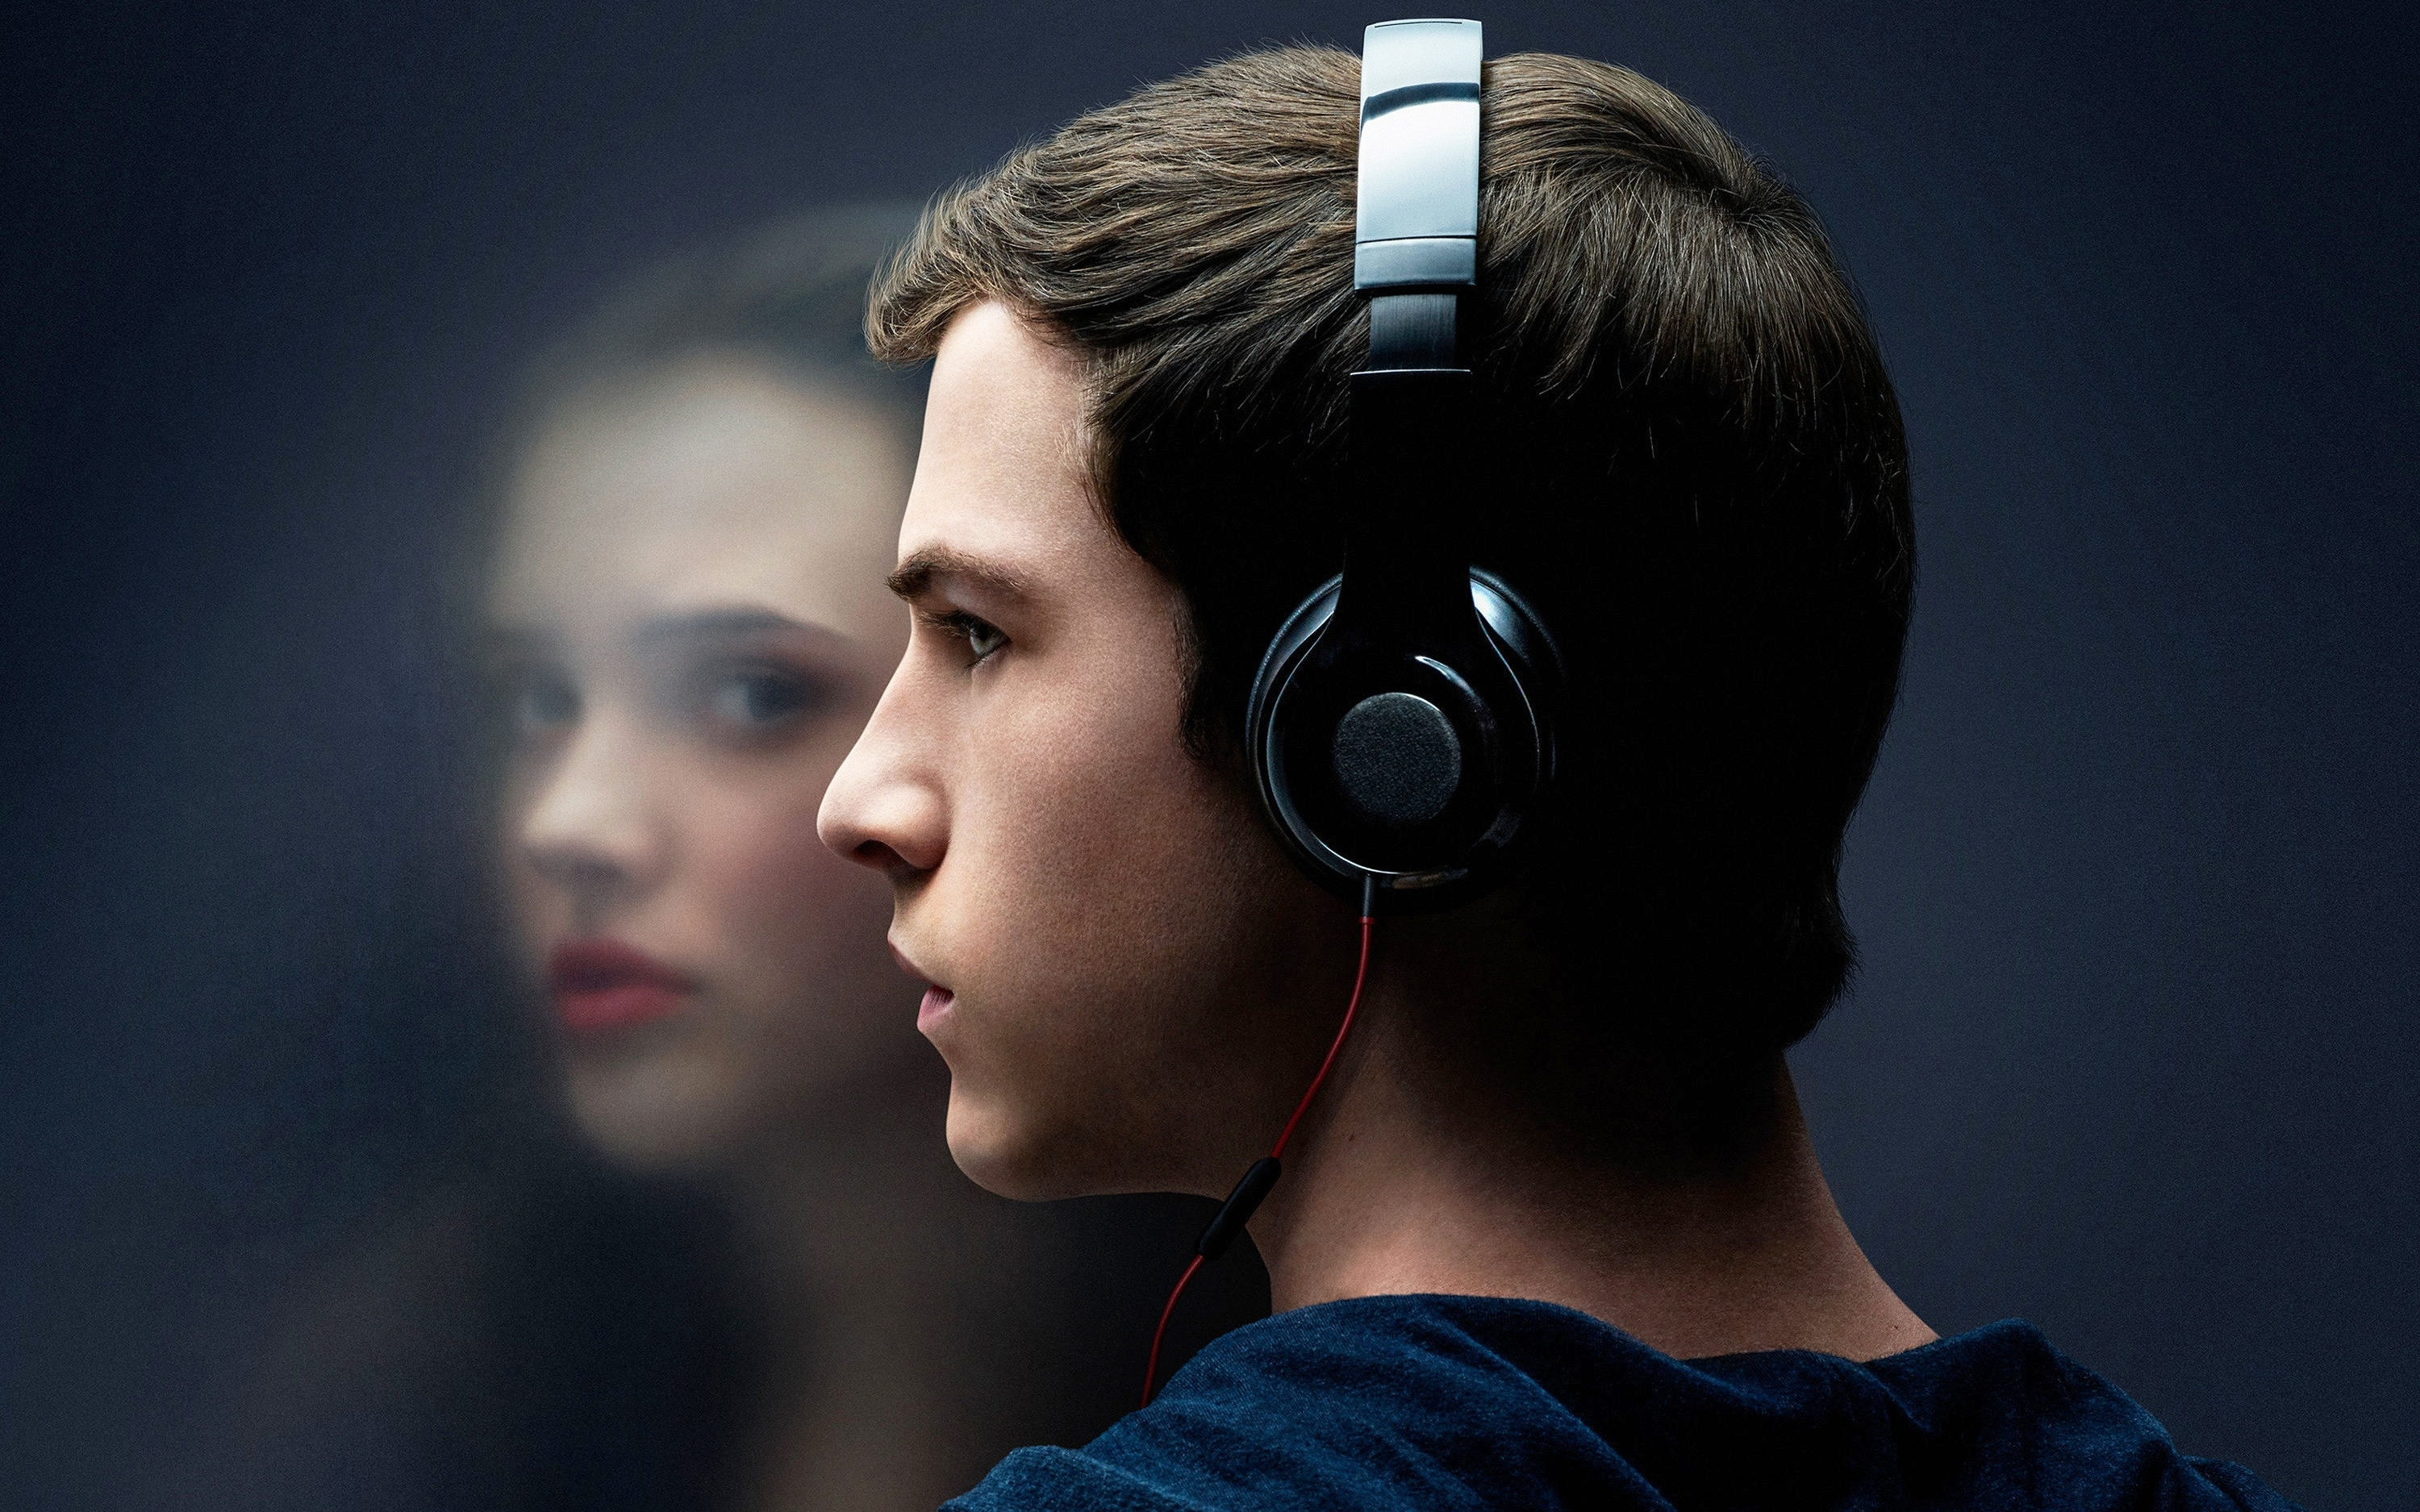 10 most popular 13 reasons why wallpaper full hd 1080p for pc background 2018 free download - 13 reasons why download ...